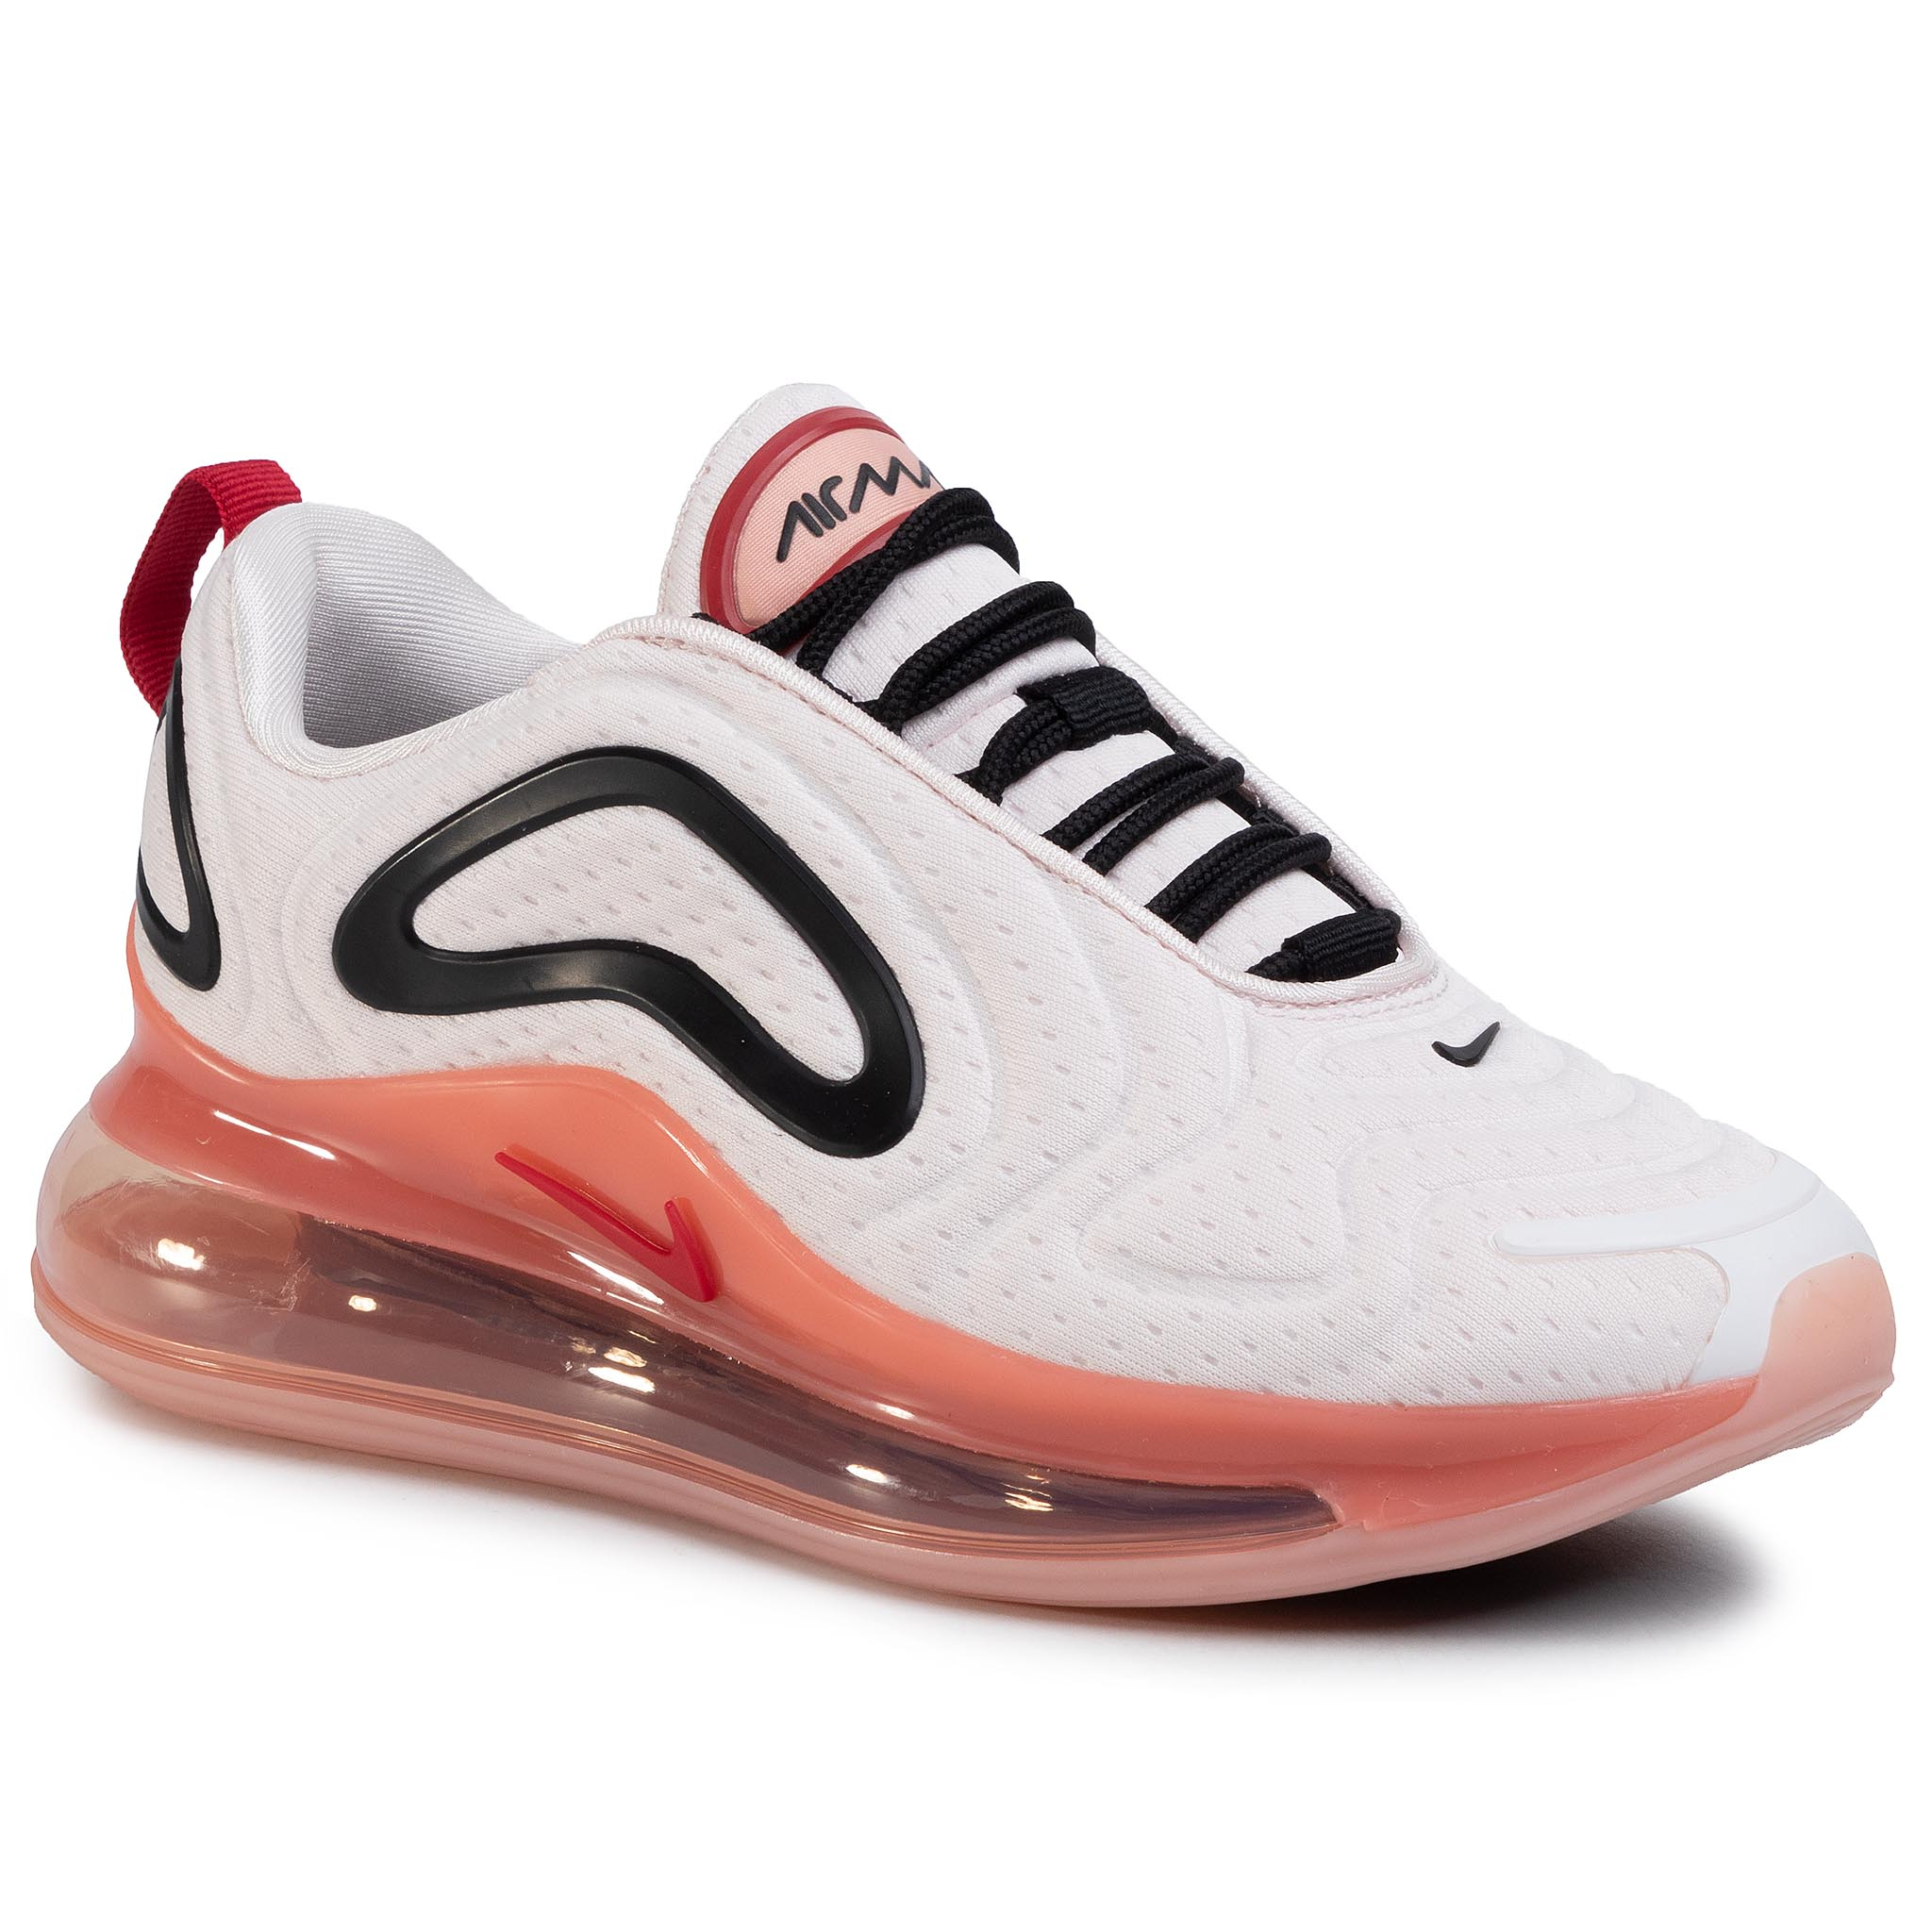 Sneaker Nike Zapatos NIKE - Air Max 720 AR9293 602 Light Soft Pink/Gym Red